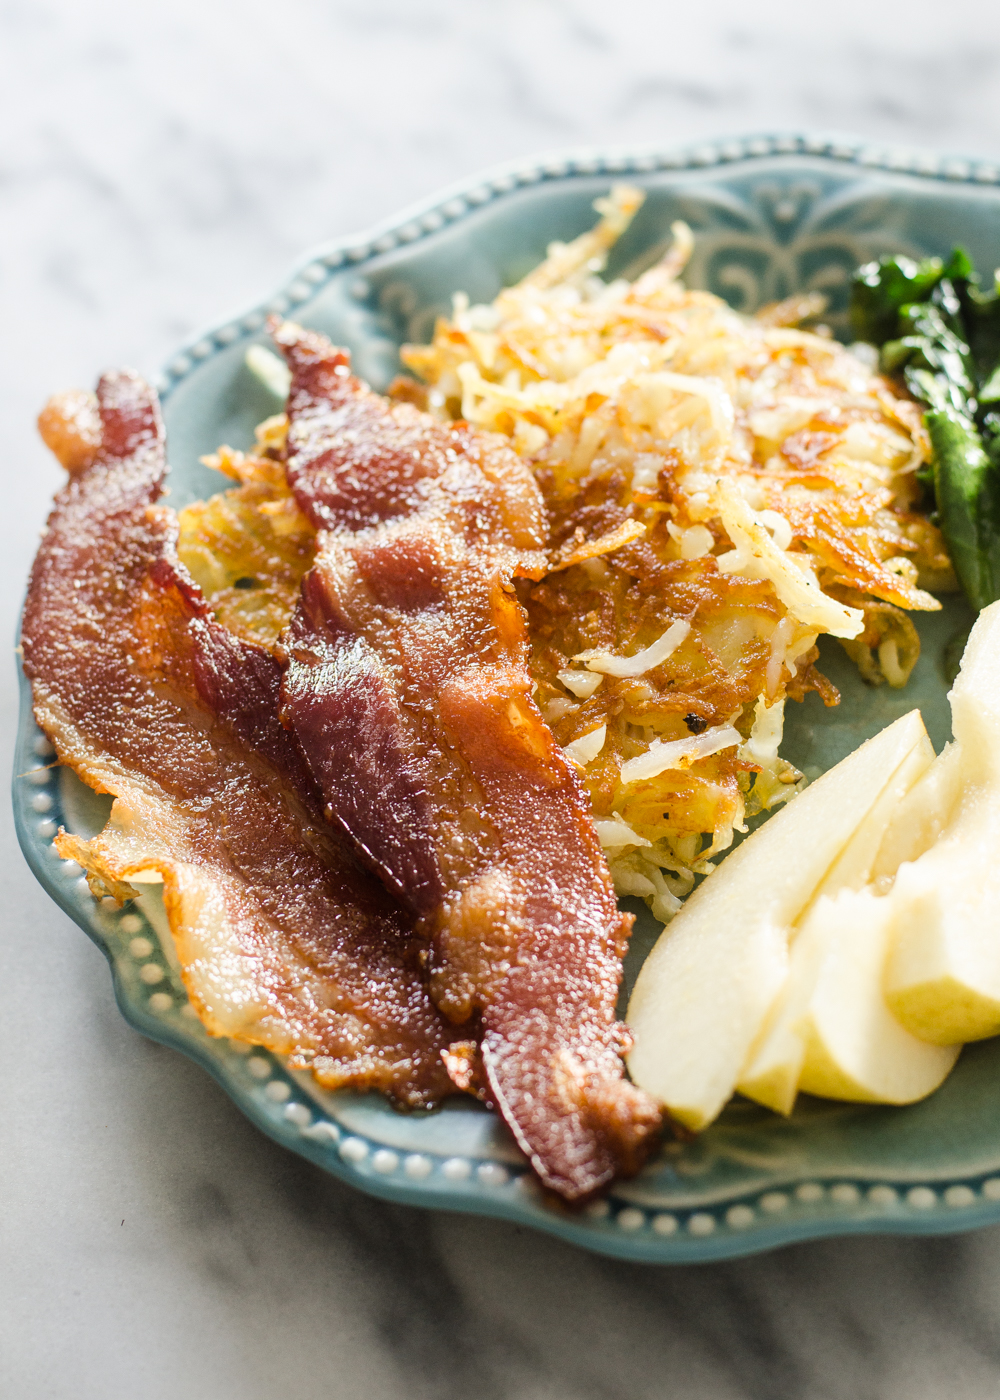 Butcher Box Review Meal 3 - Bacon & Hashbrowns